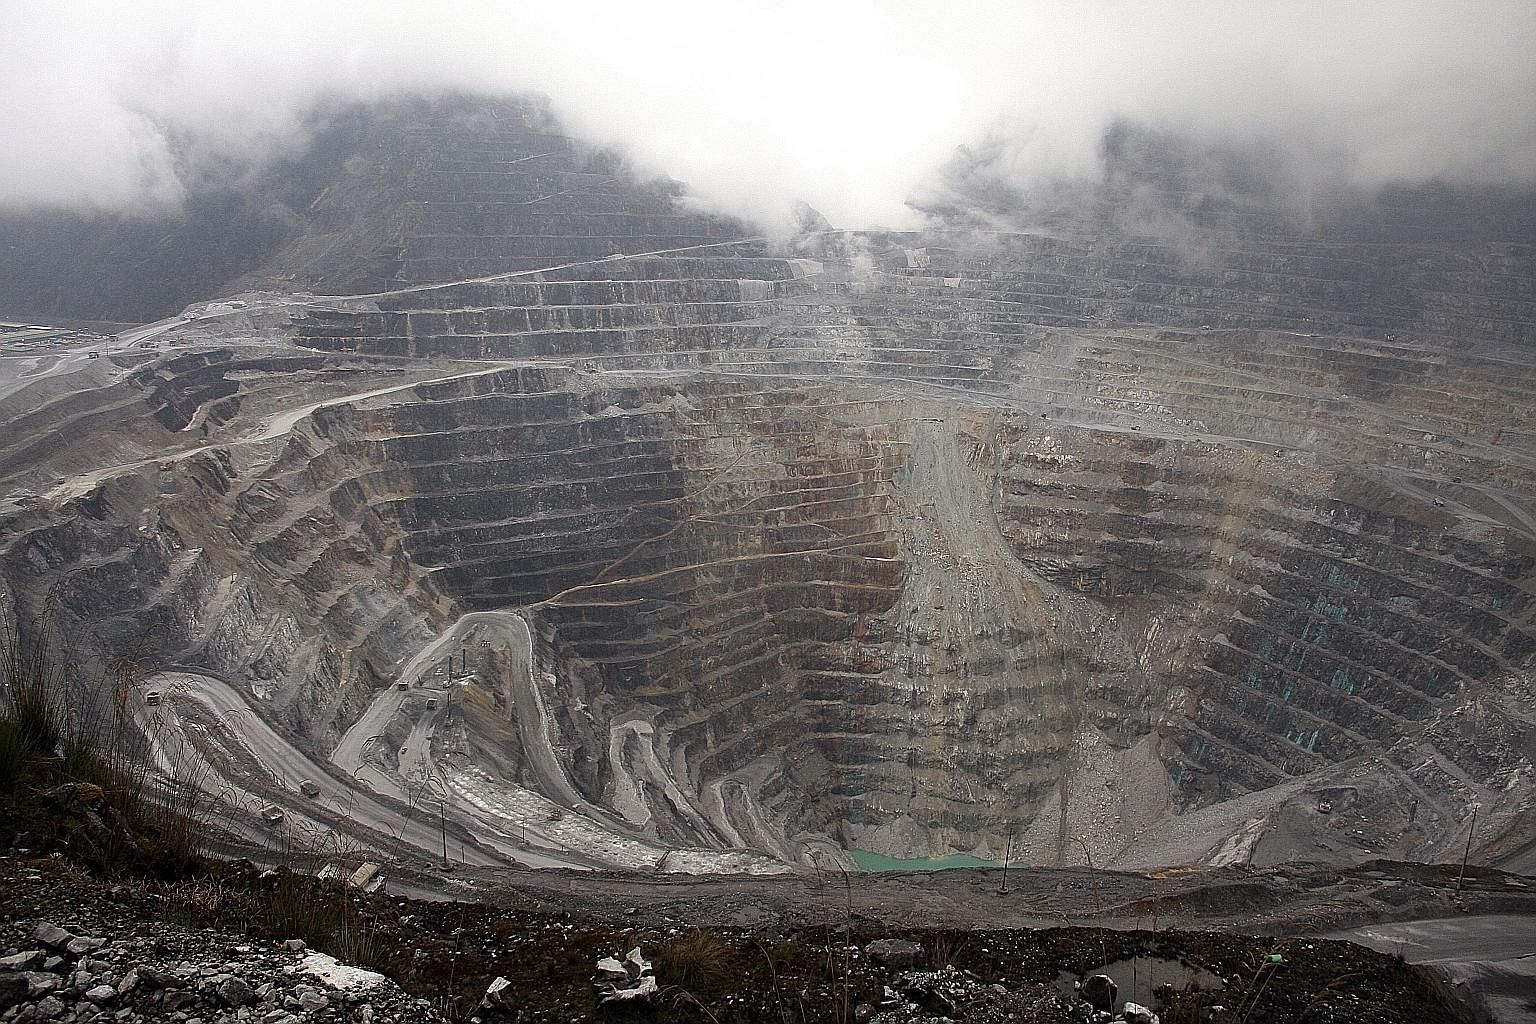 A 2013 file photo showing the Grasberg mining complex, the world's largest gold mine and second-largest copper mine, in Indonesia's Papua province. Besides Papua, Indonesia's largest gold mines can be found on Sumbawa island in West Nusa Tenggara, an